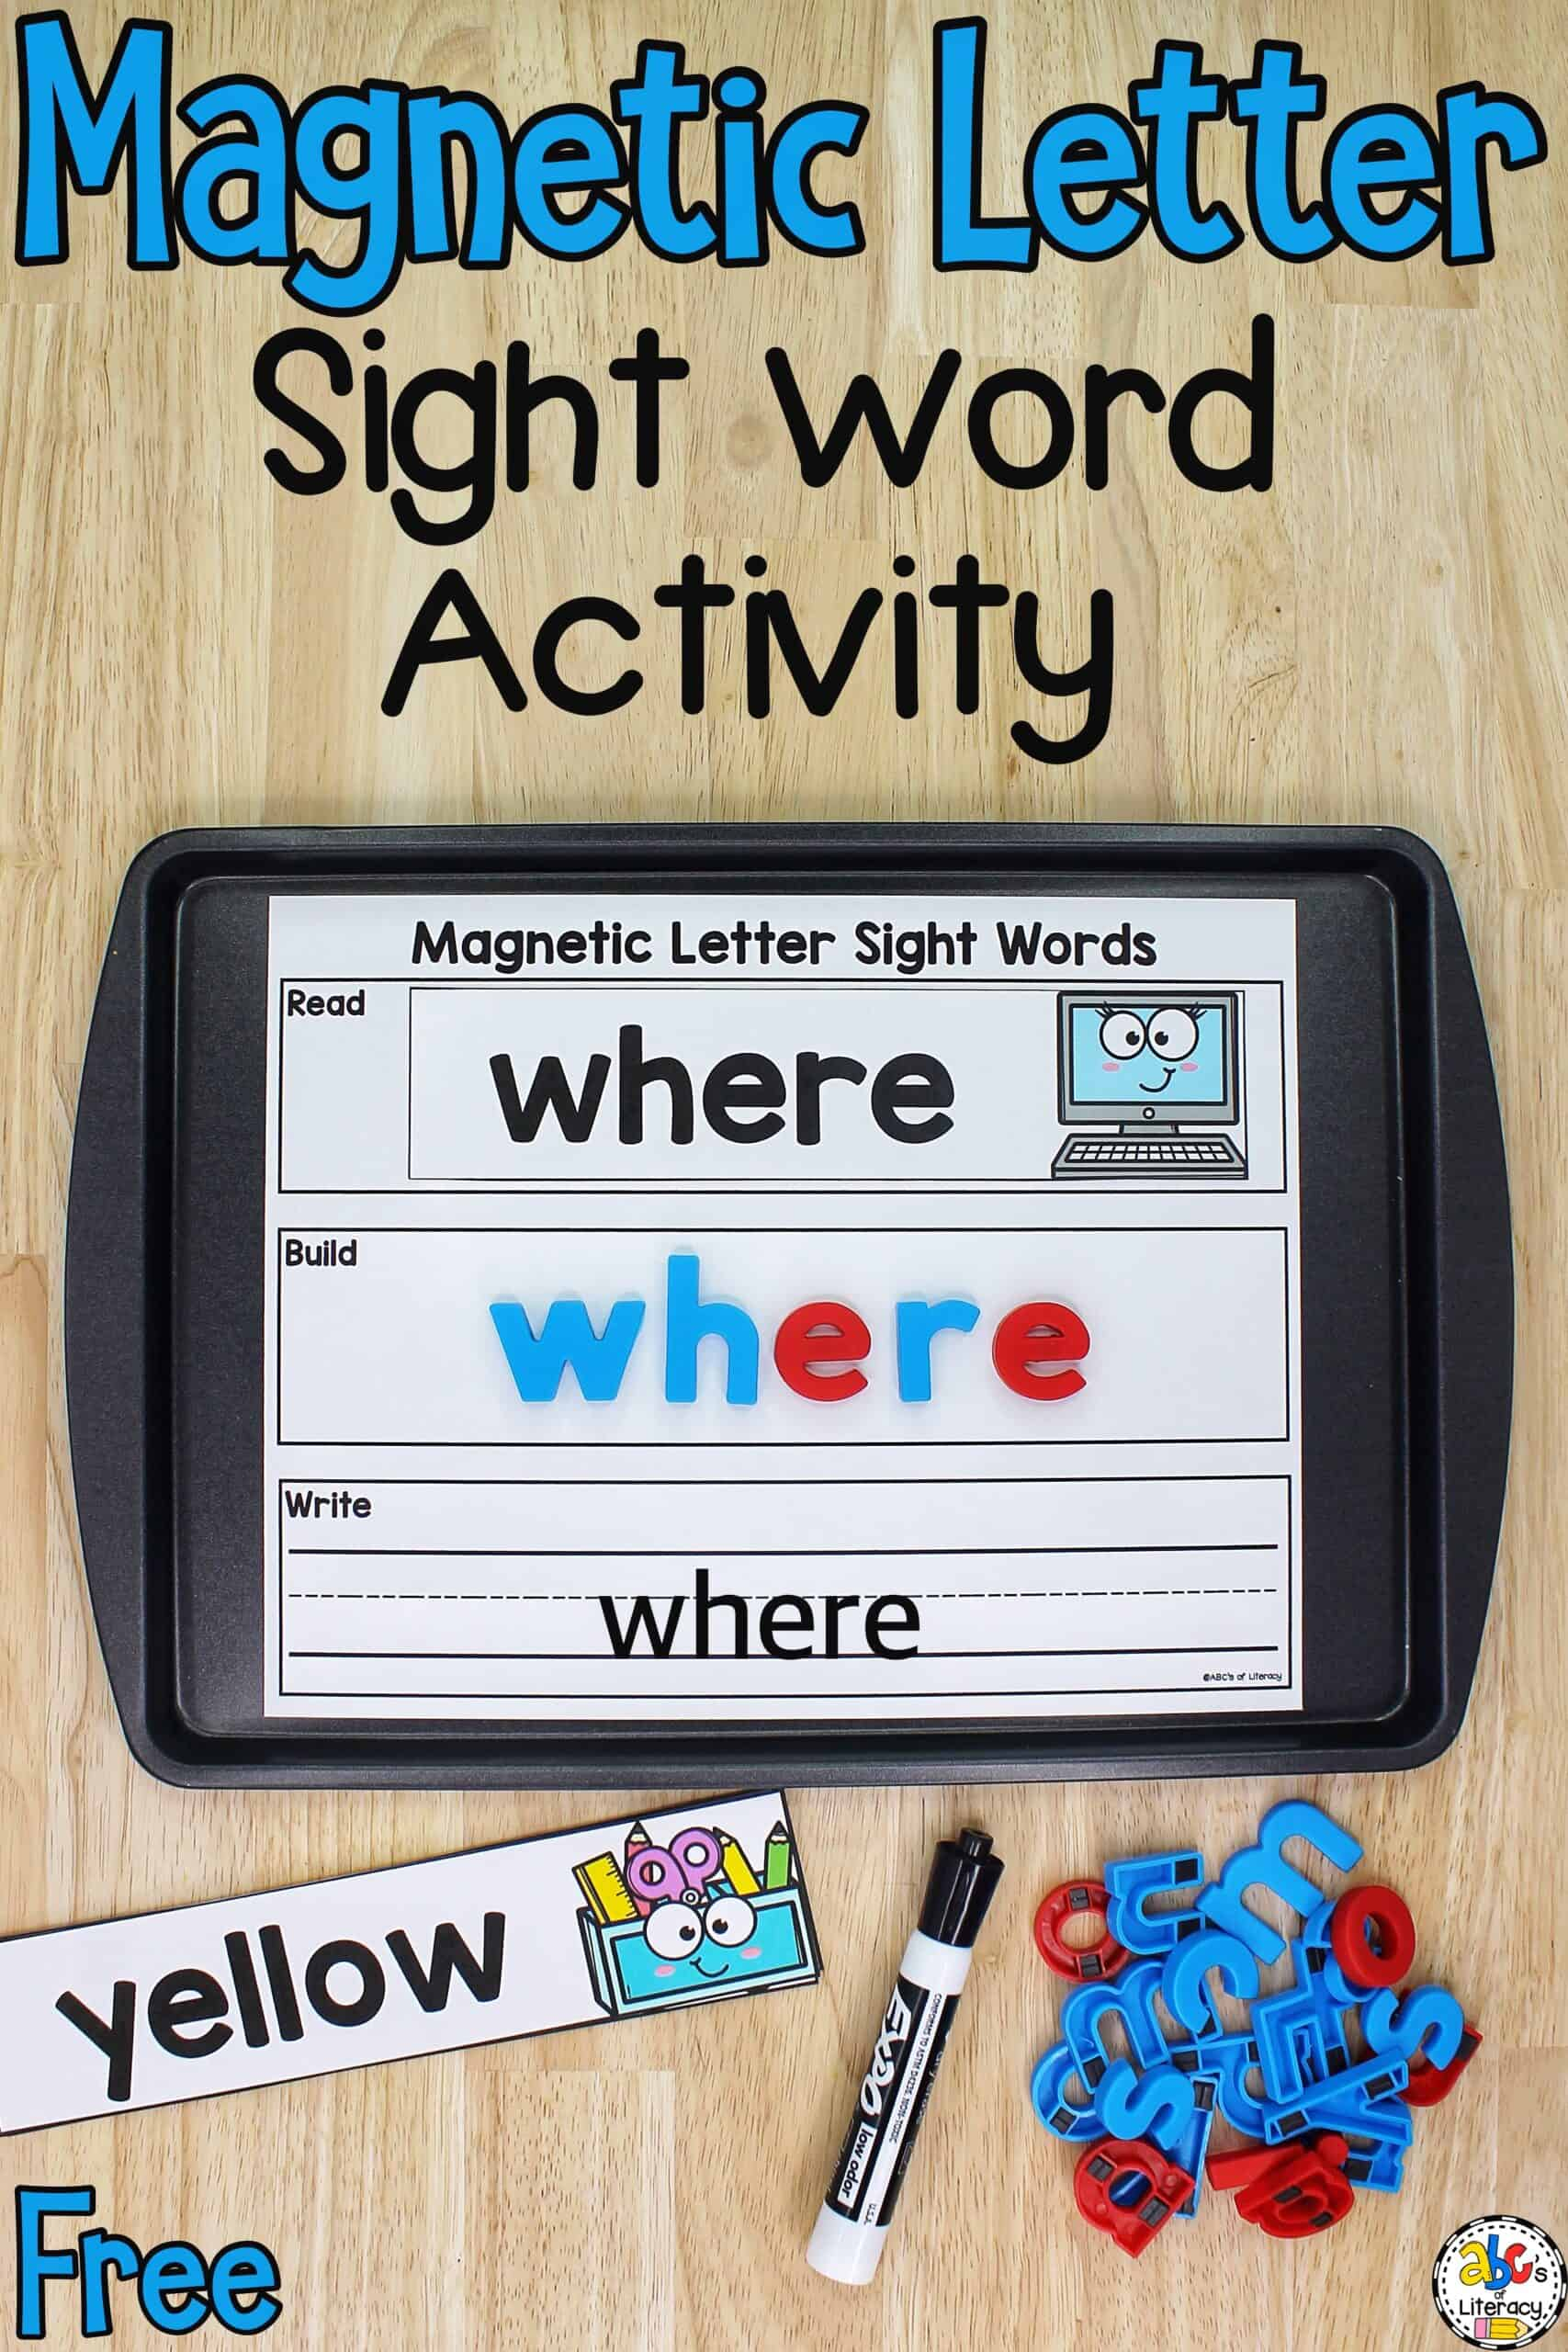 Magnetic Letter Sight Words Activity